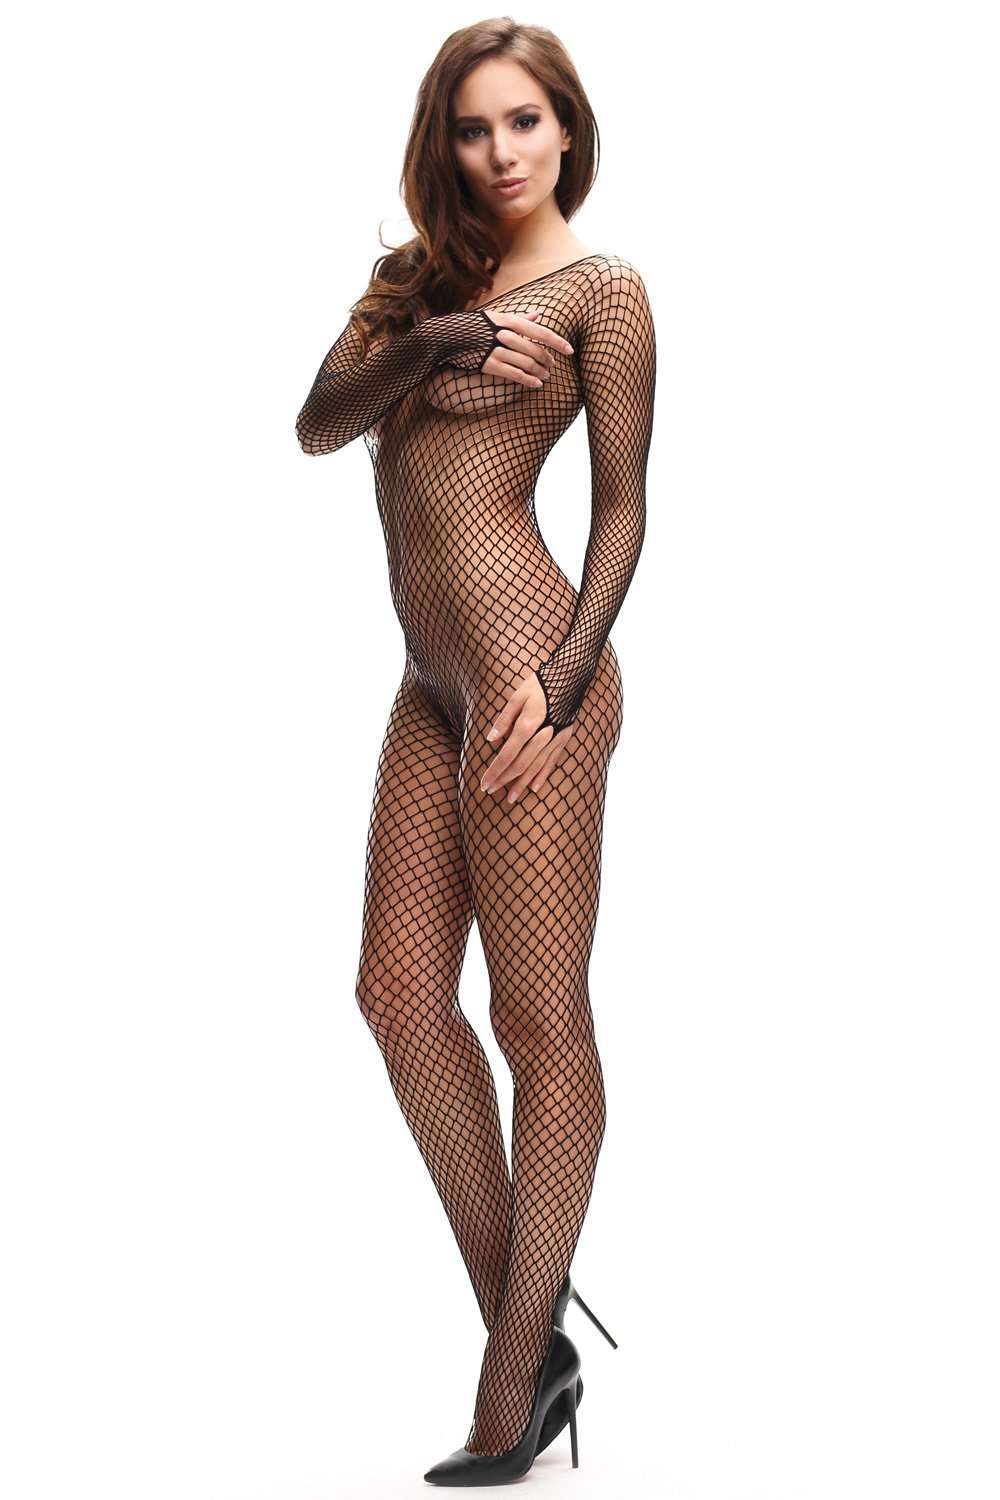 missO Crotchless Fishnet Bodystocking